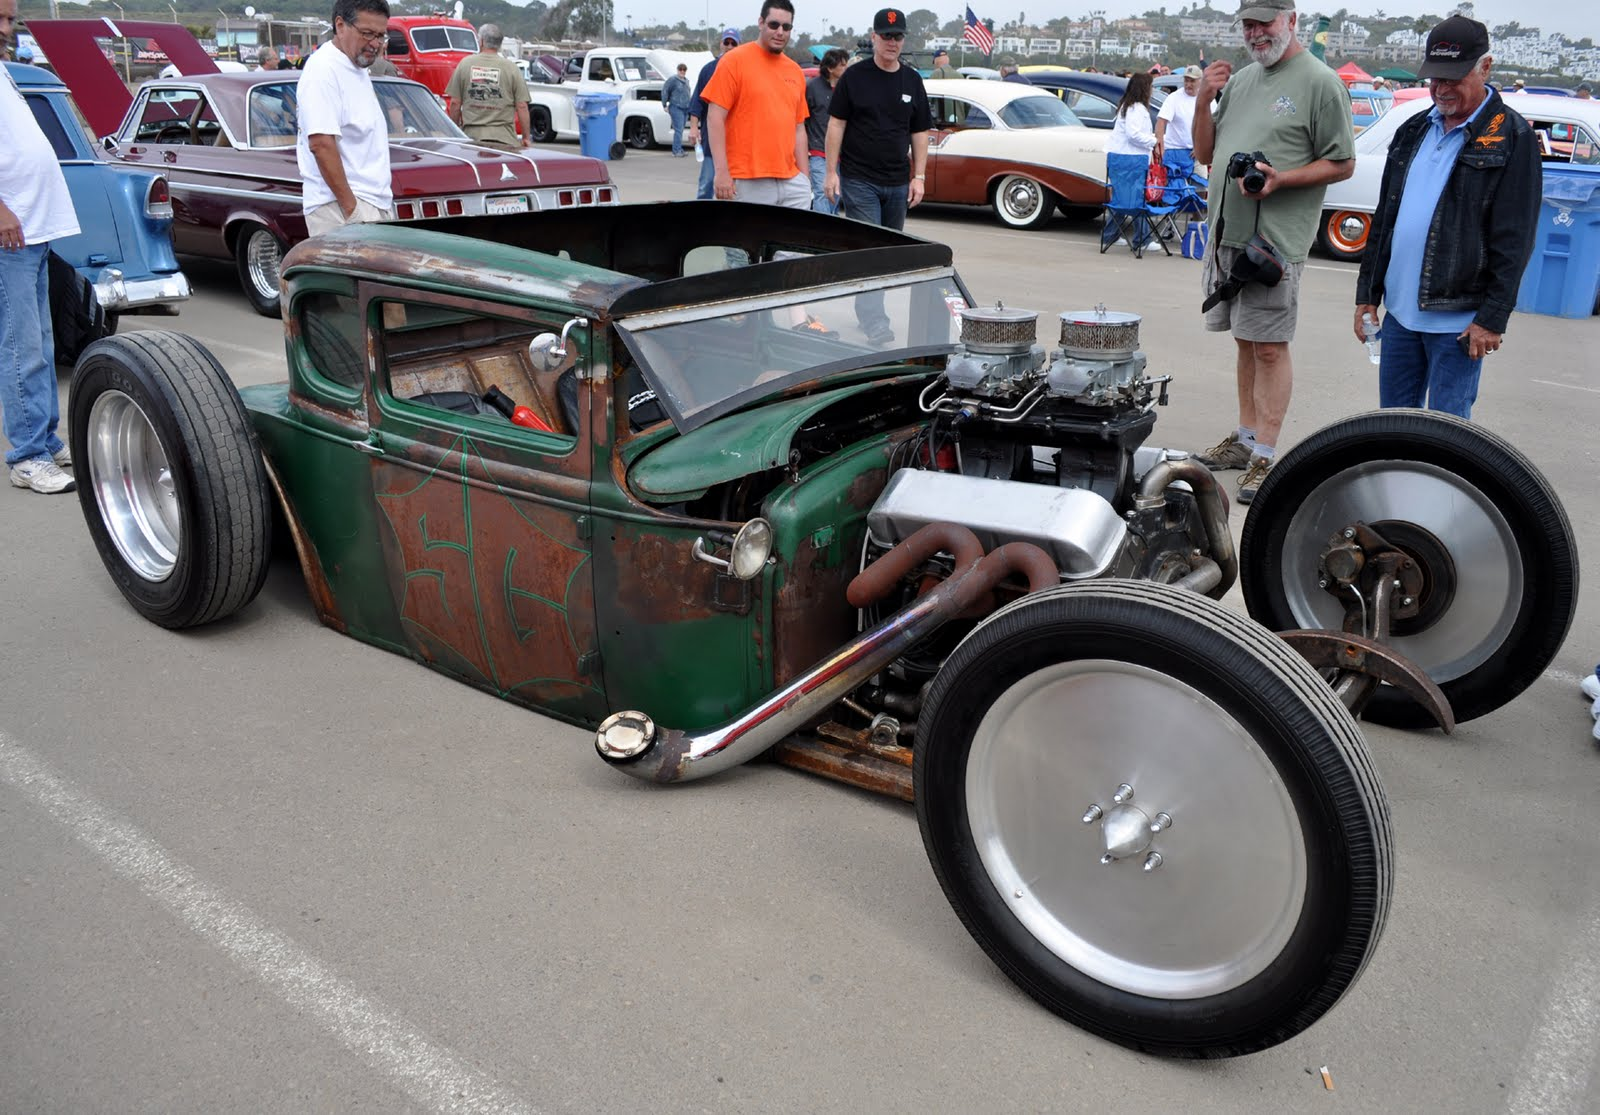 Just A Car Guy: The SG rat rod. They might consider calling it the ...